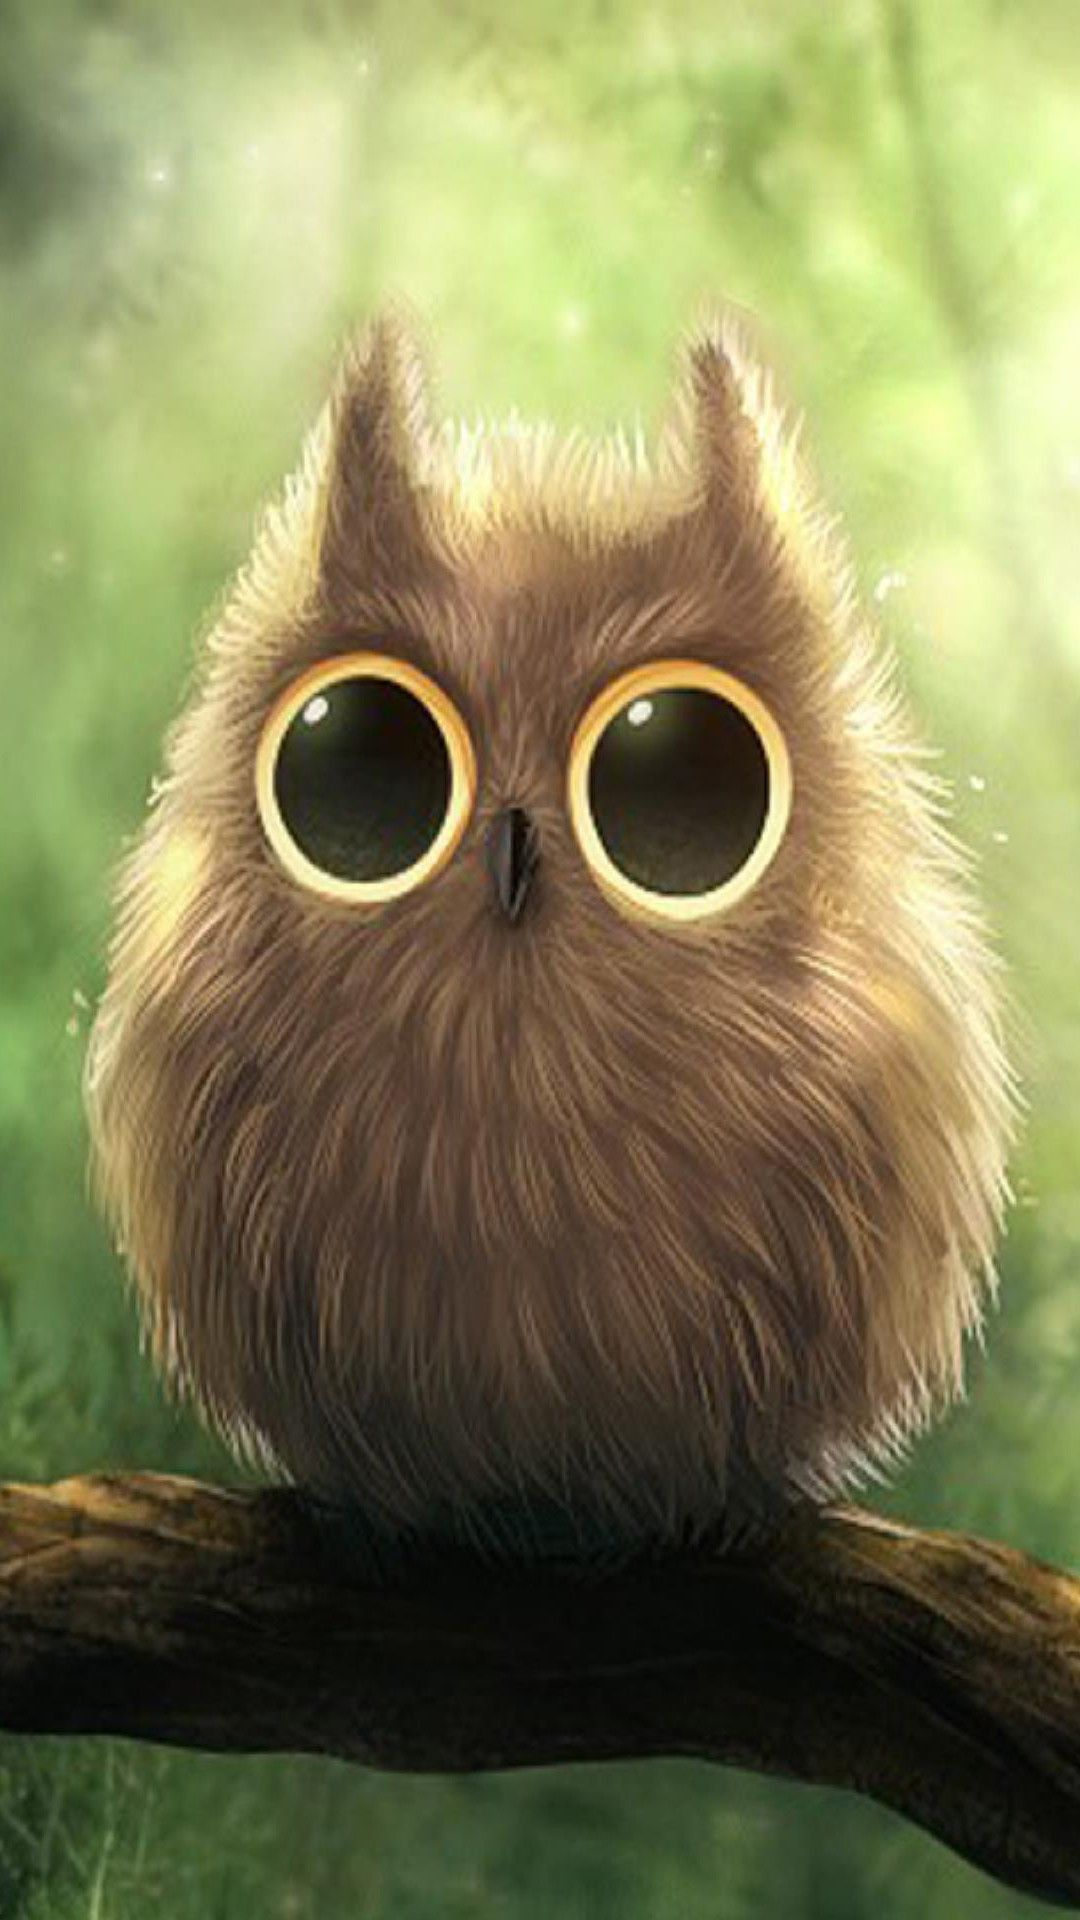 1080x1920 Pin by ZenZone on iPhone Wallpapers in 2019 | Owl wallpaper, Owl ...